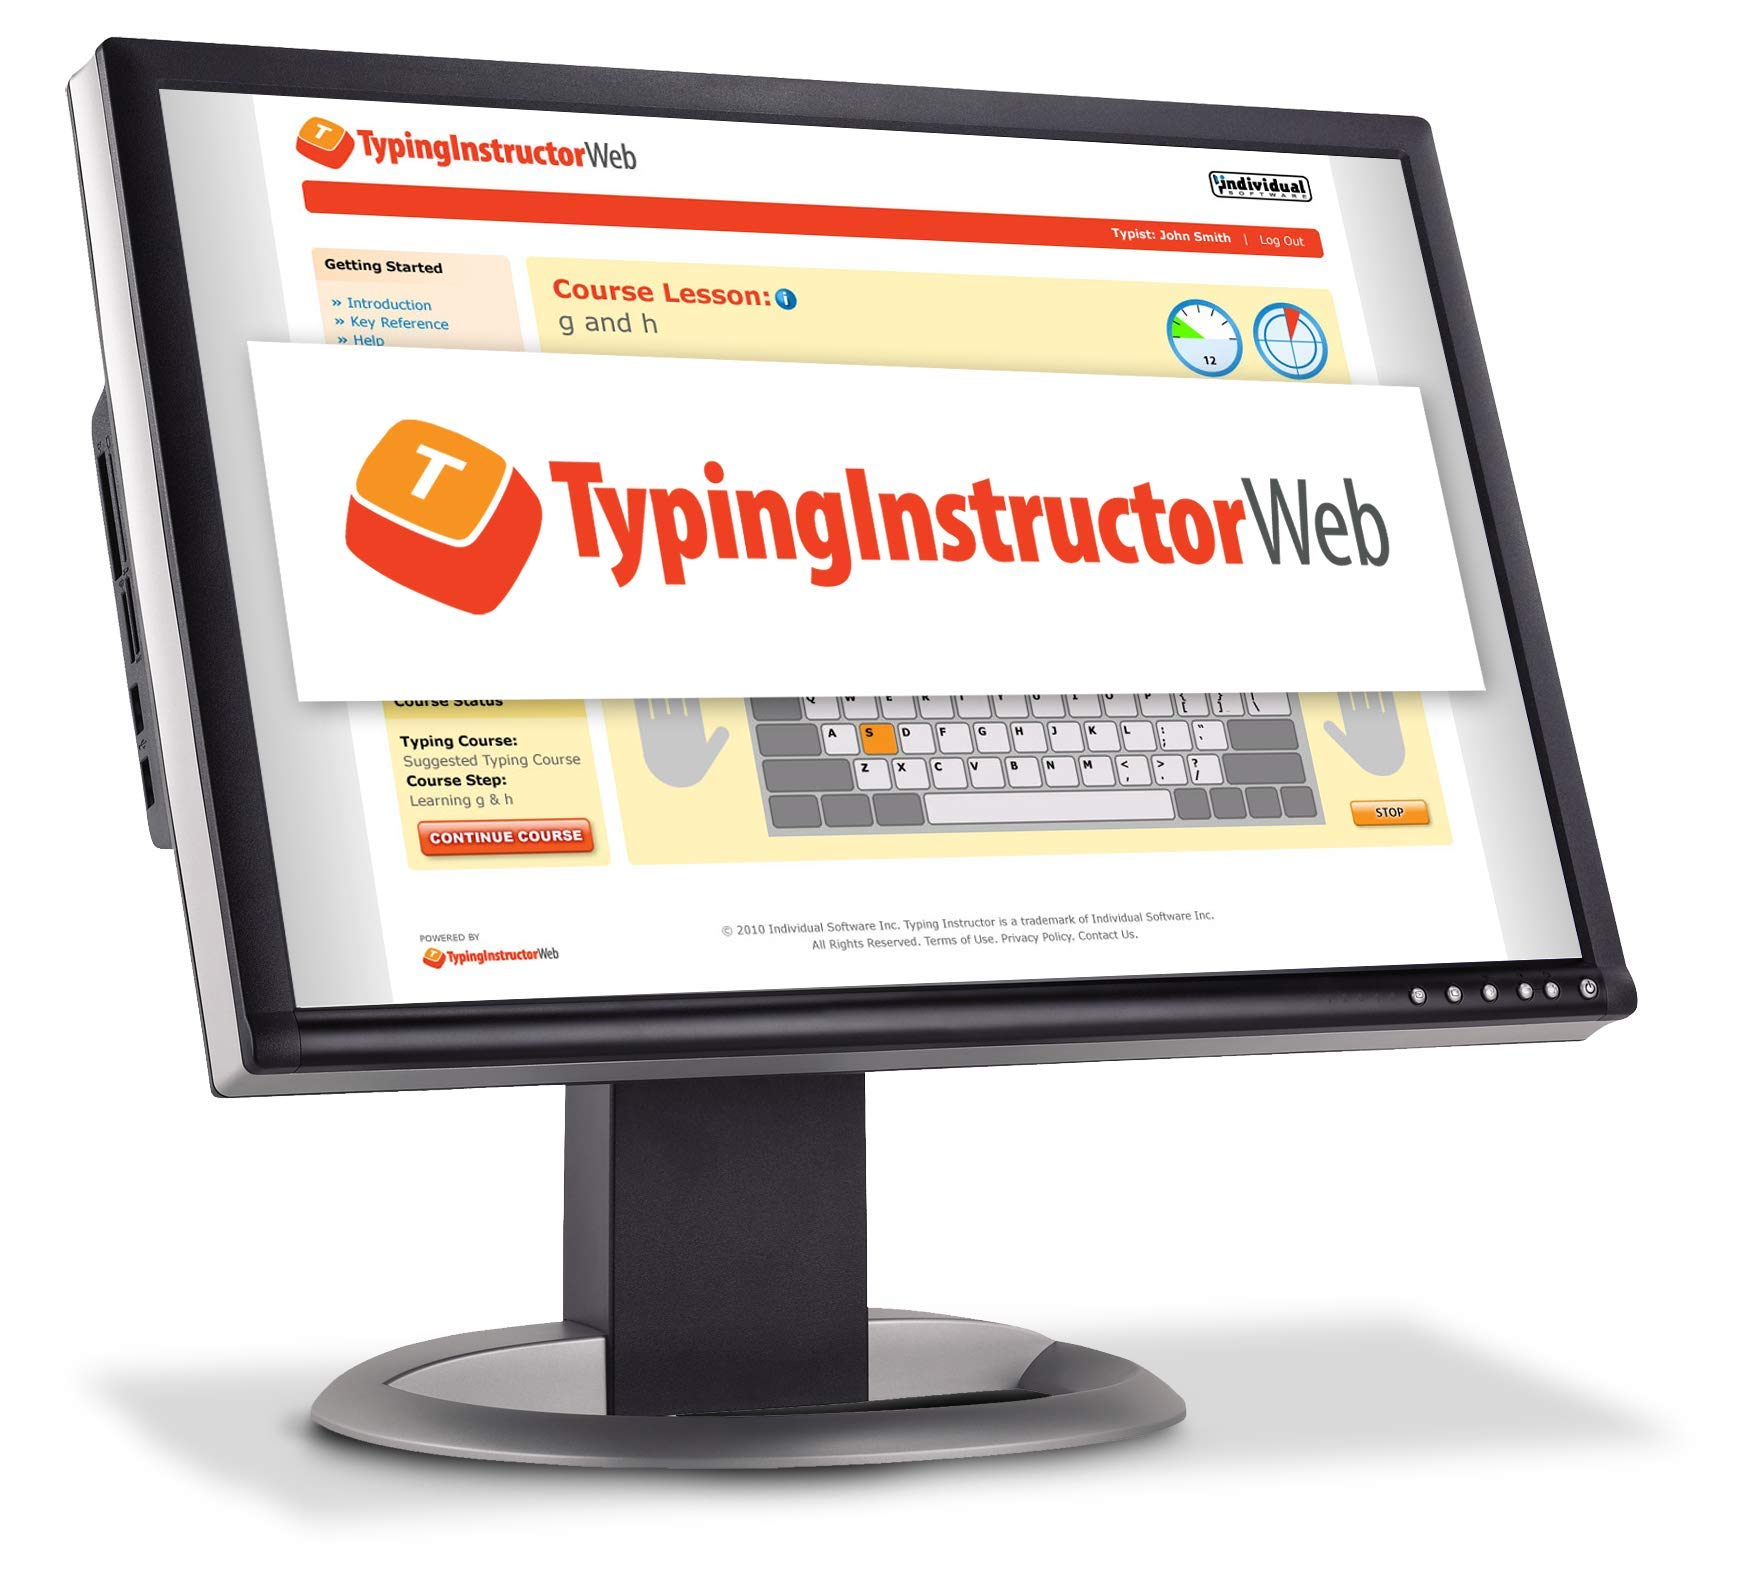 Typing Instructor Web - Annual Subscription [Online Code] by Individual Software